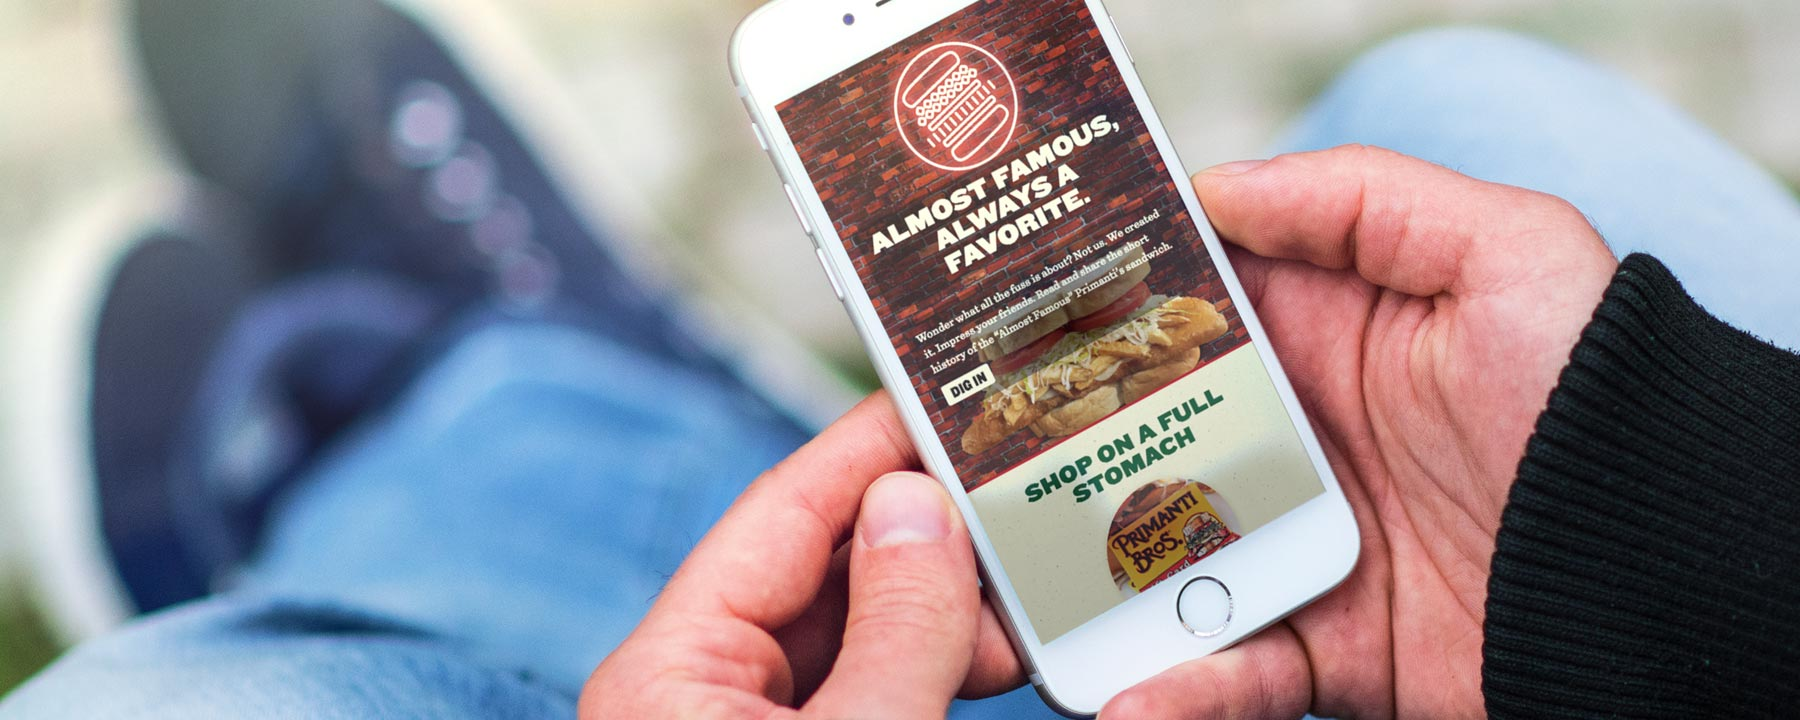 Primanti Brothers' website shown on a mobile device.